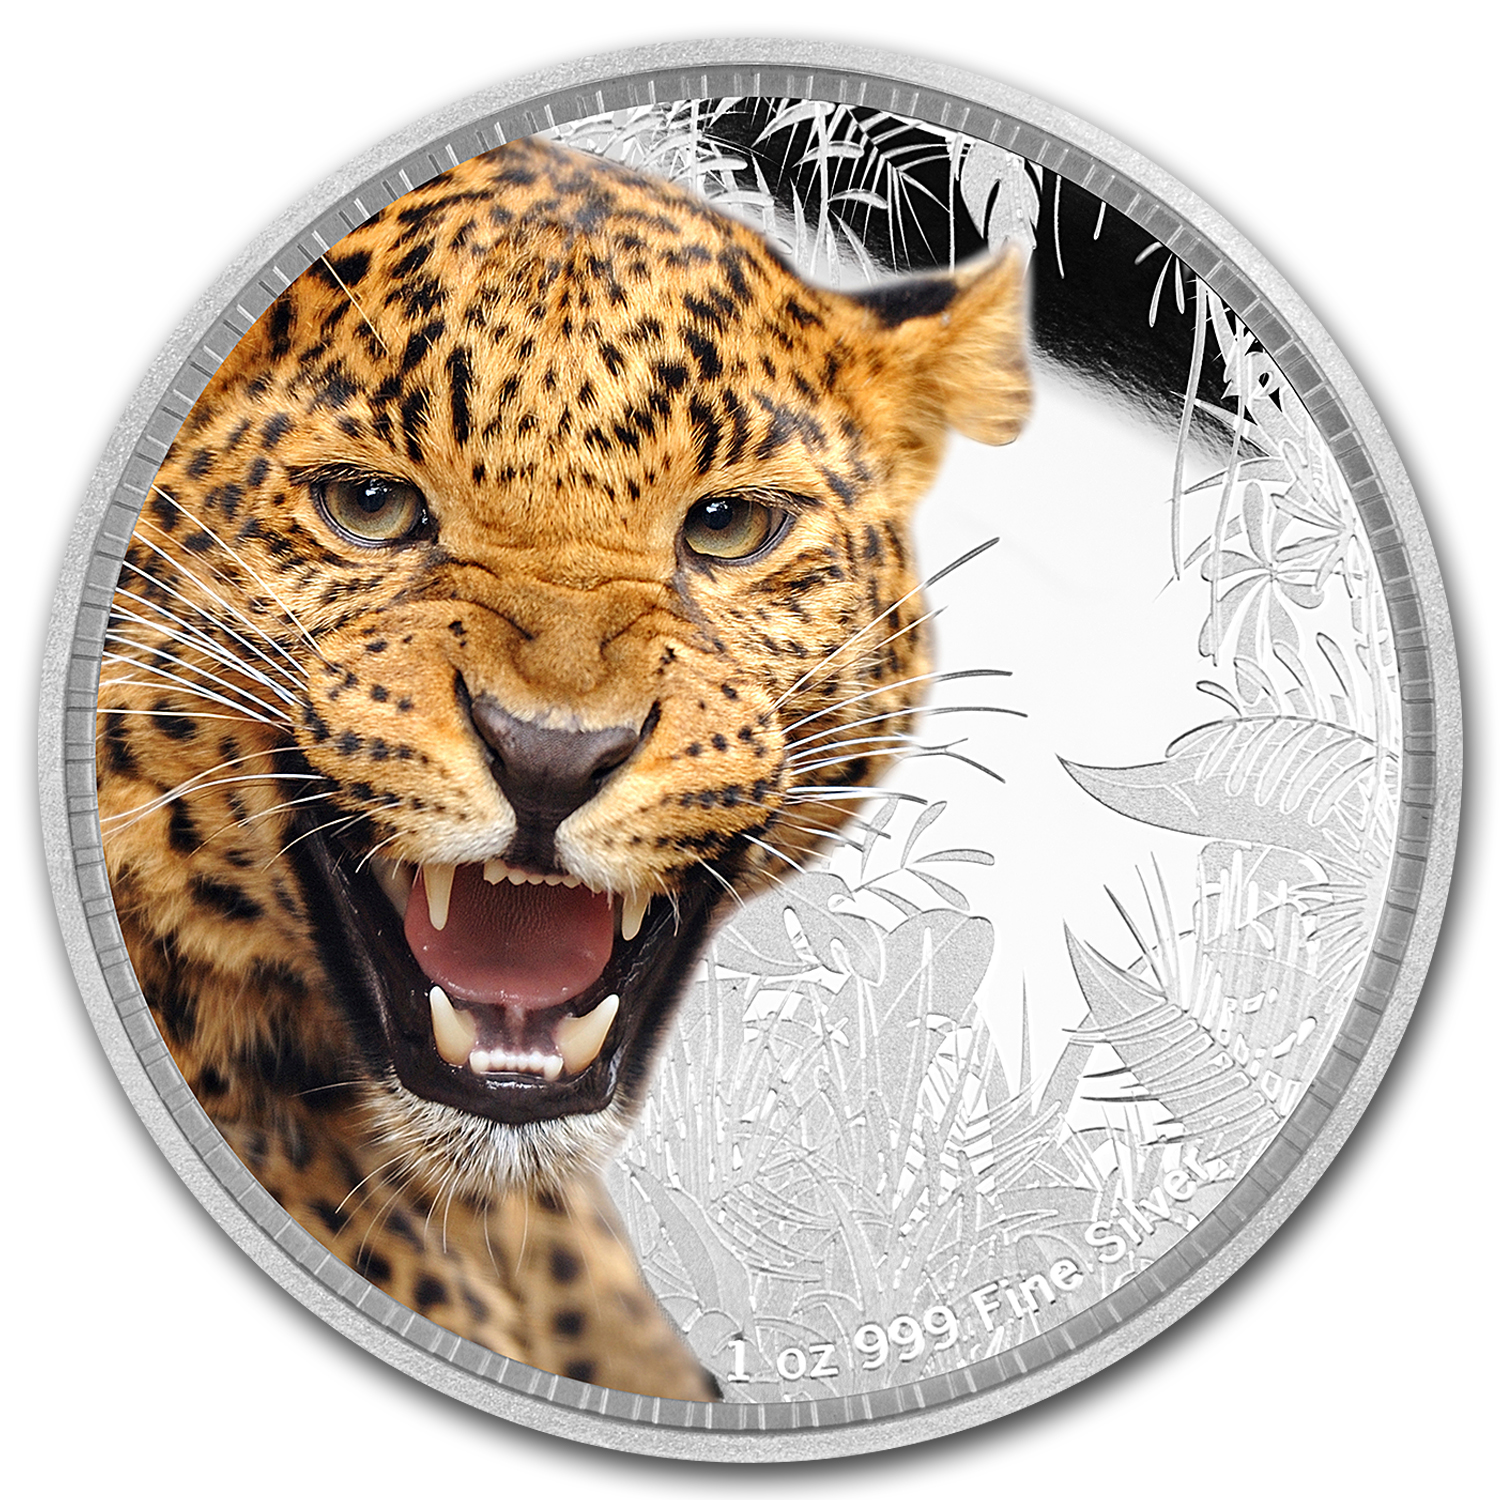 2016 Niue 1 oz Silver Kings of Continents Jaguar Proof